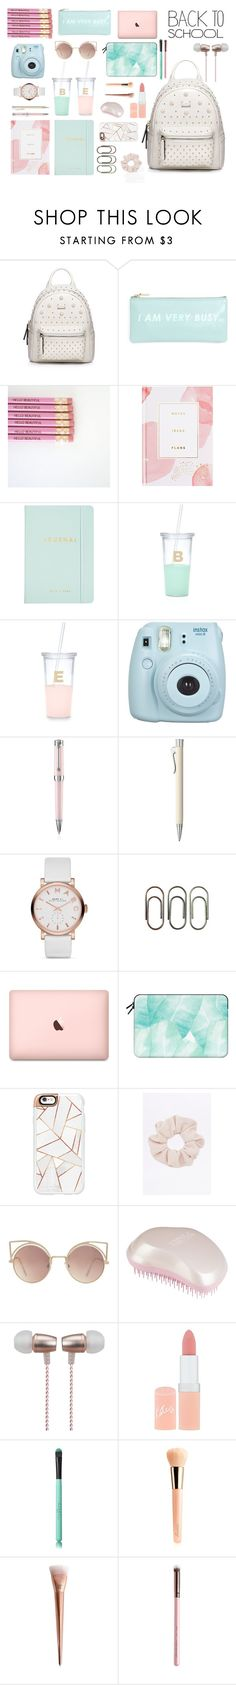 """""""Back To School"""" by inesvf20 on Polyvore featuring WithChic, ban.do, Thrive, Kate Spade, Fujifilm, Montegrappa, Faber-Castell, Marc Jacobs, Clips and Casetify"""